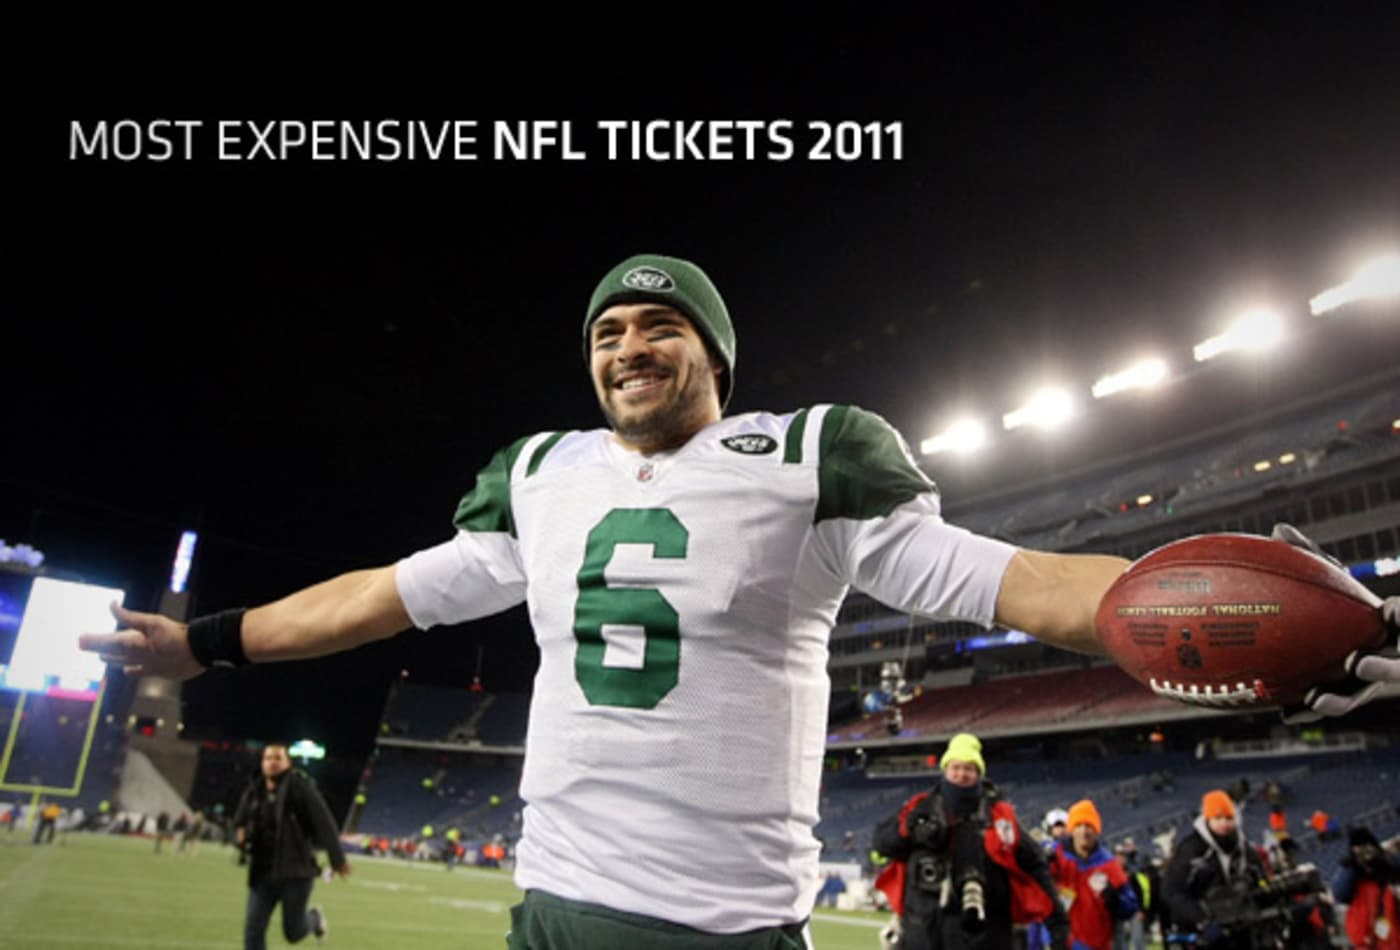 CNBC_most_exp_nfl_2011_cover.jpg